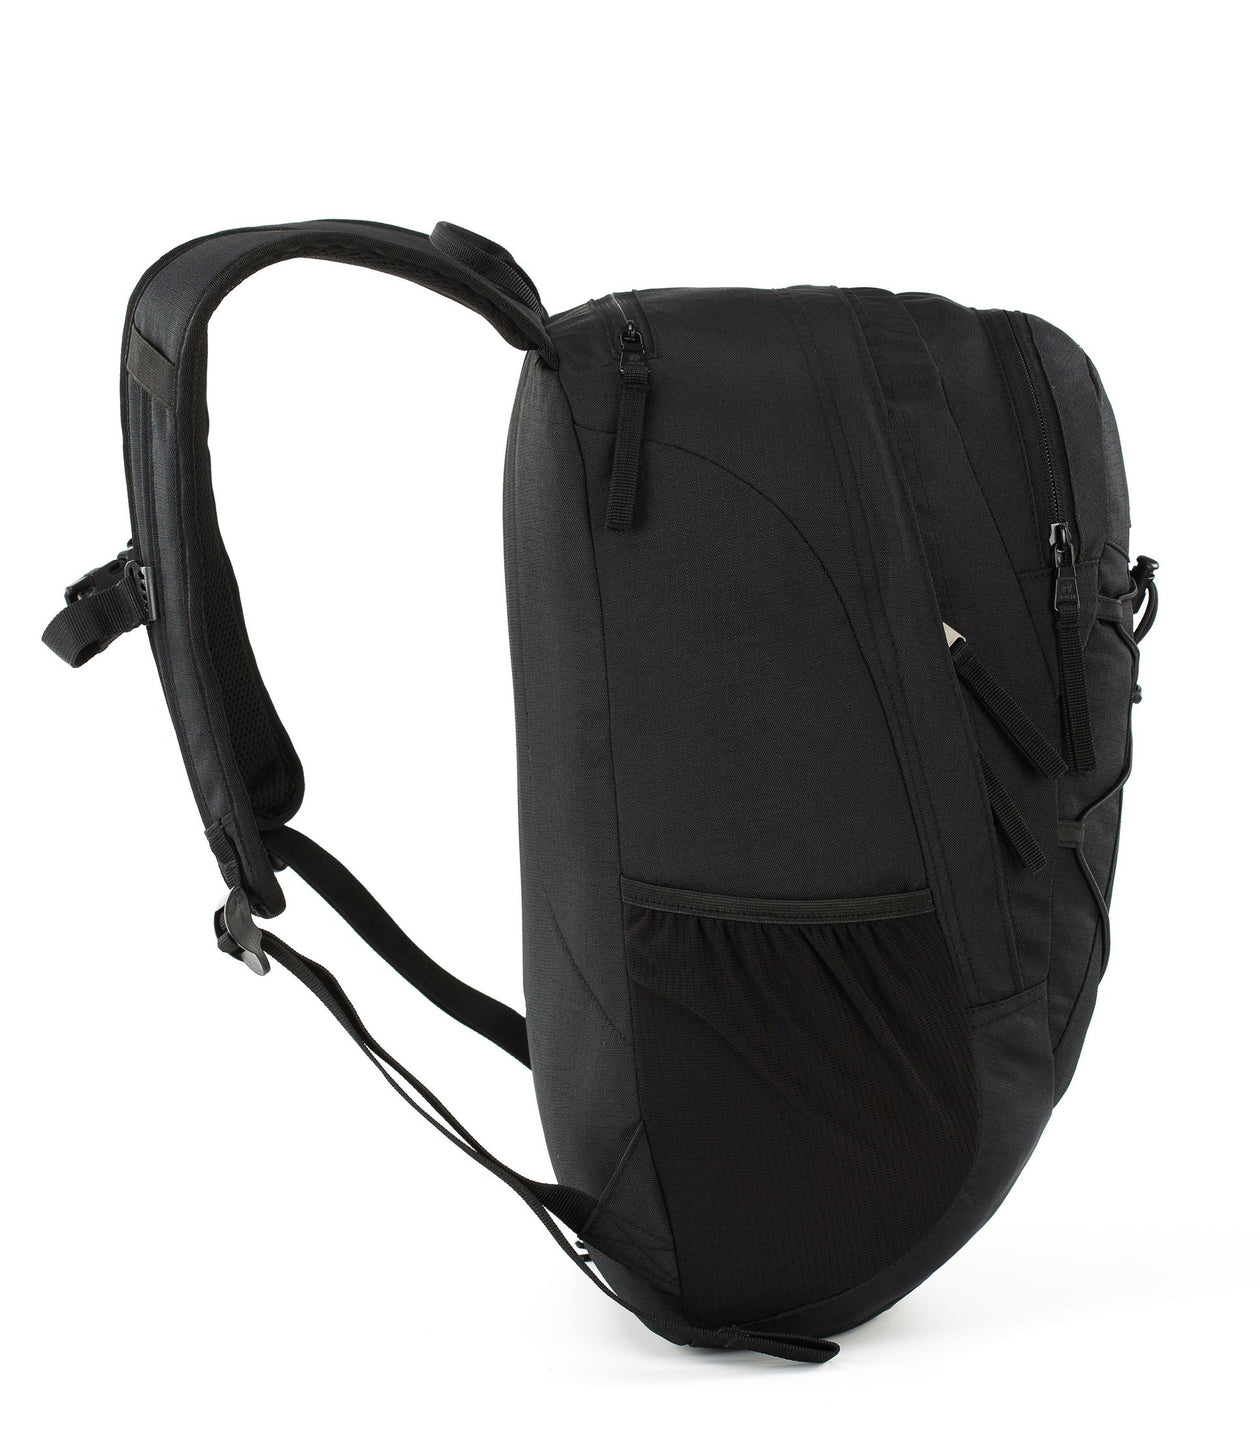 Staxton 20L Backpack - Black image 4